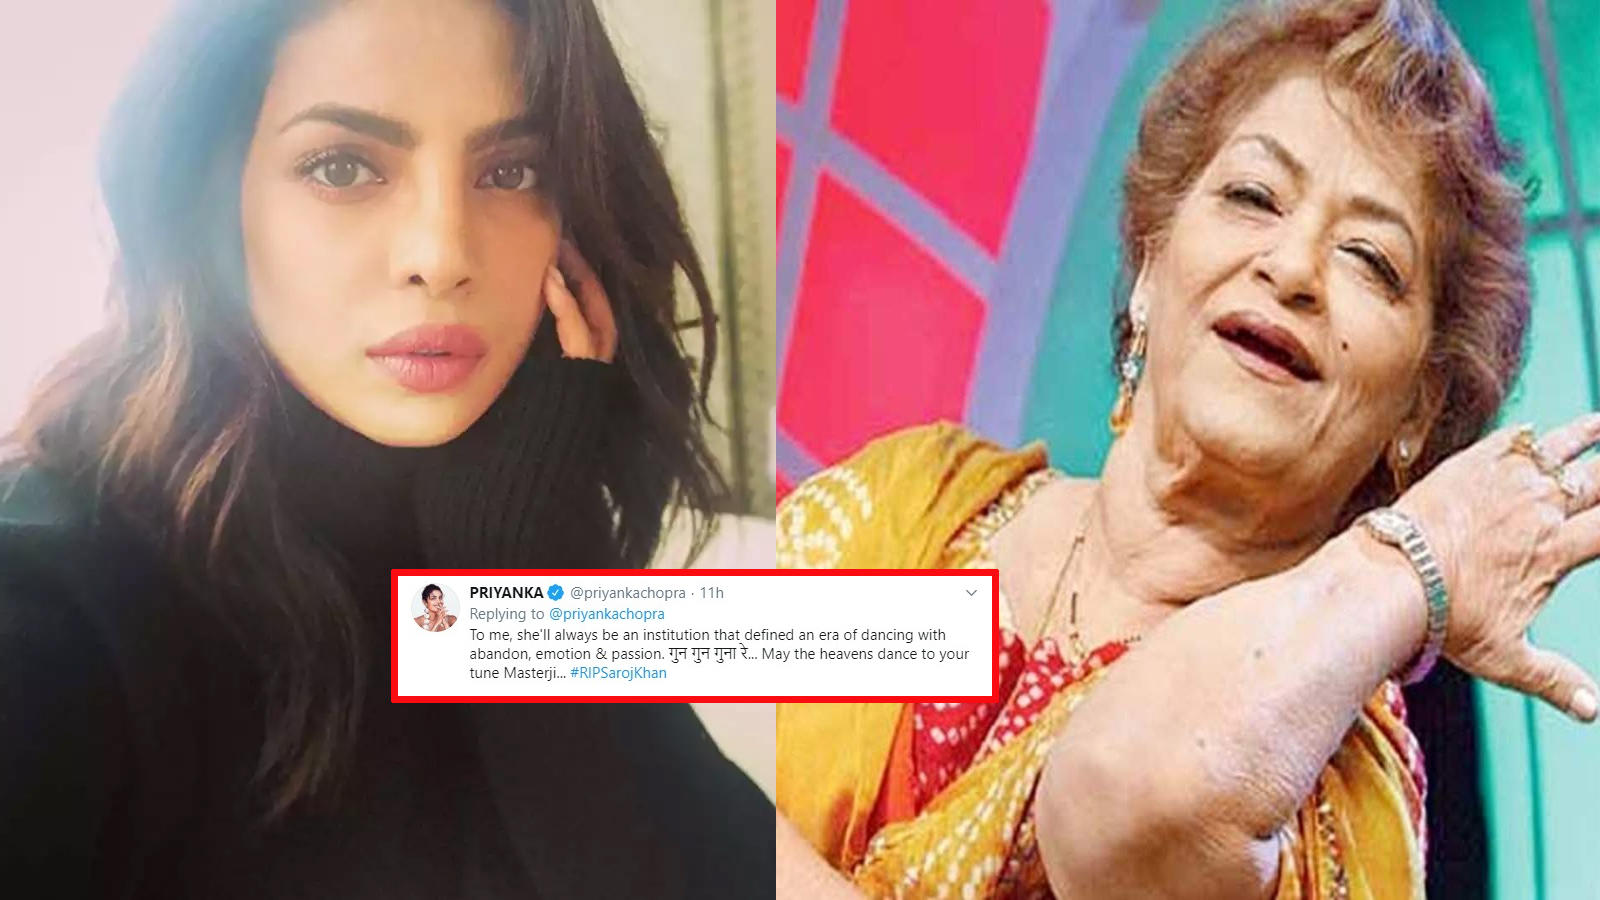 priyanka-chopra-jonas-pays-heartfelt-tribute-to-saroj-khan-writes-may-the-heavens-dance-to-your-tune-masterji